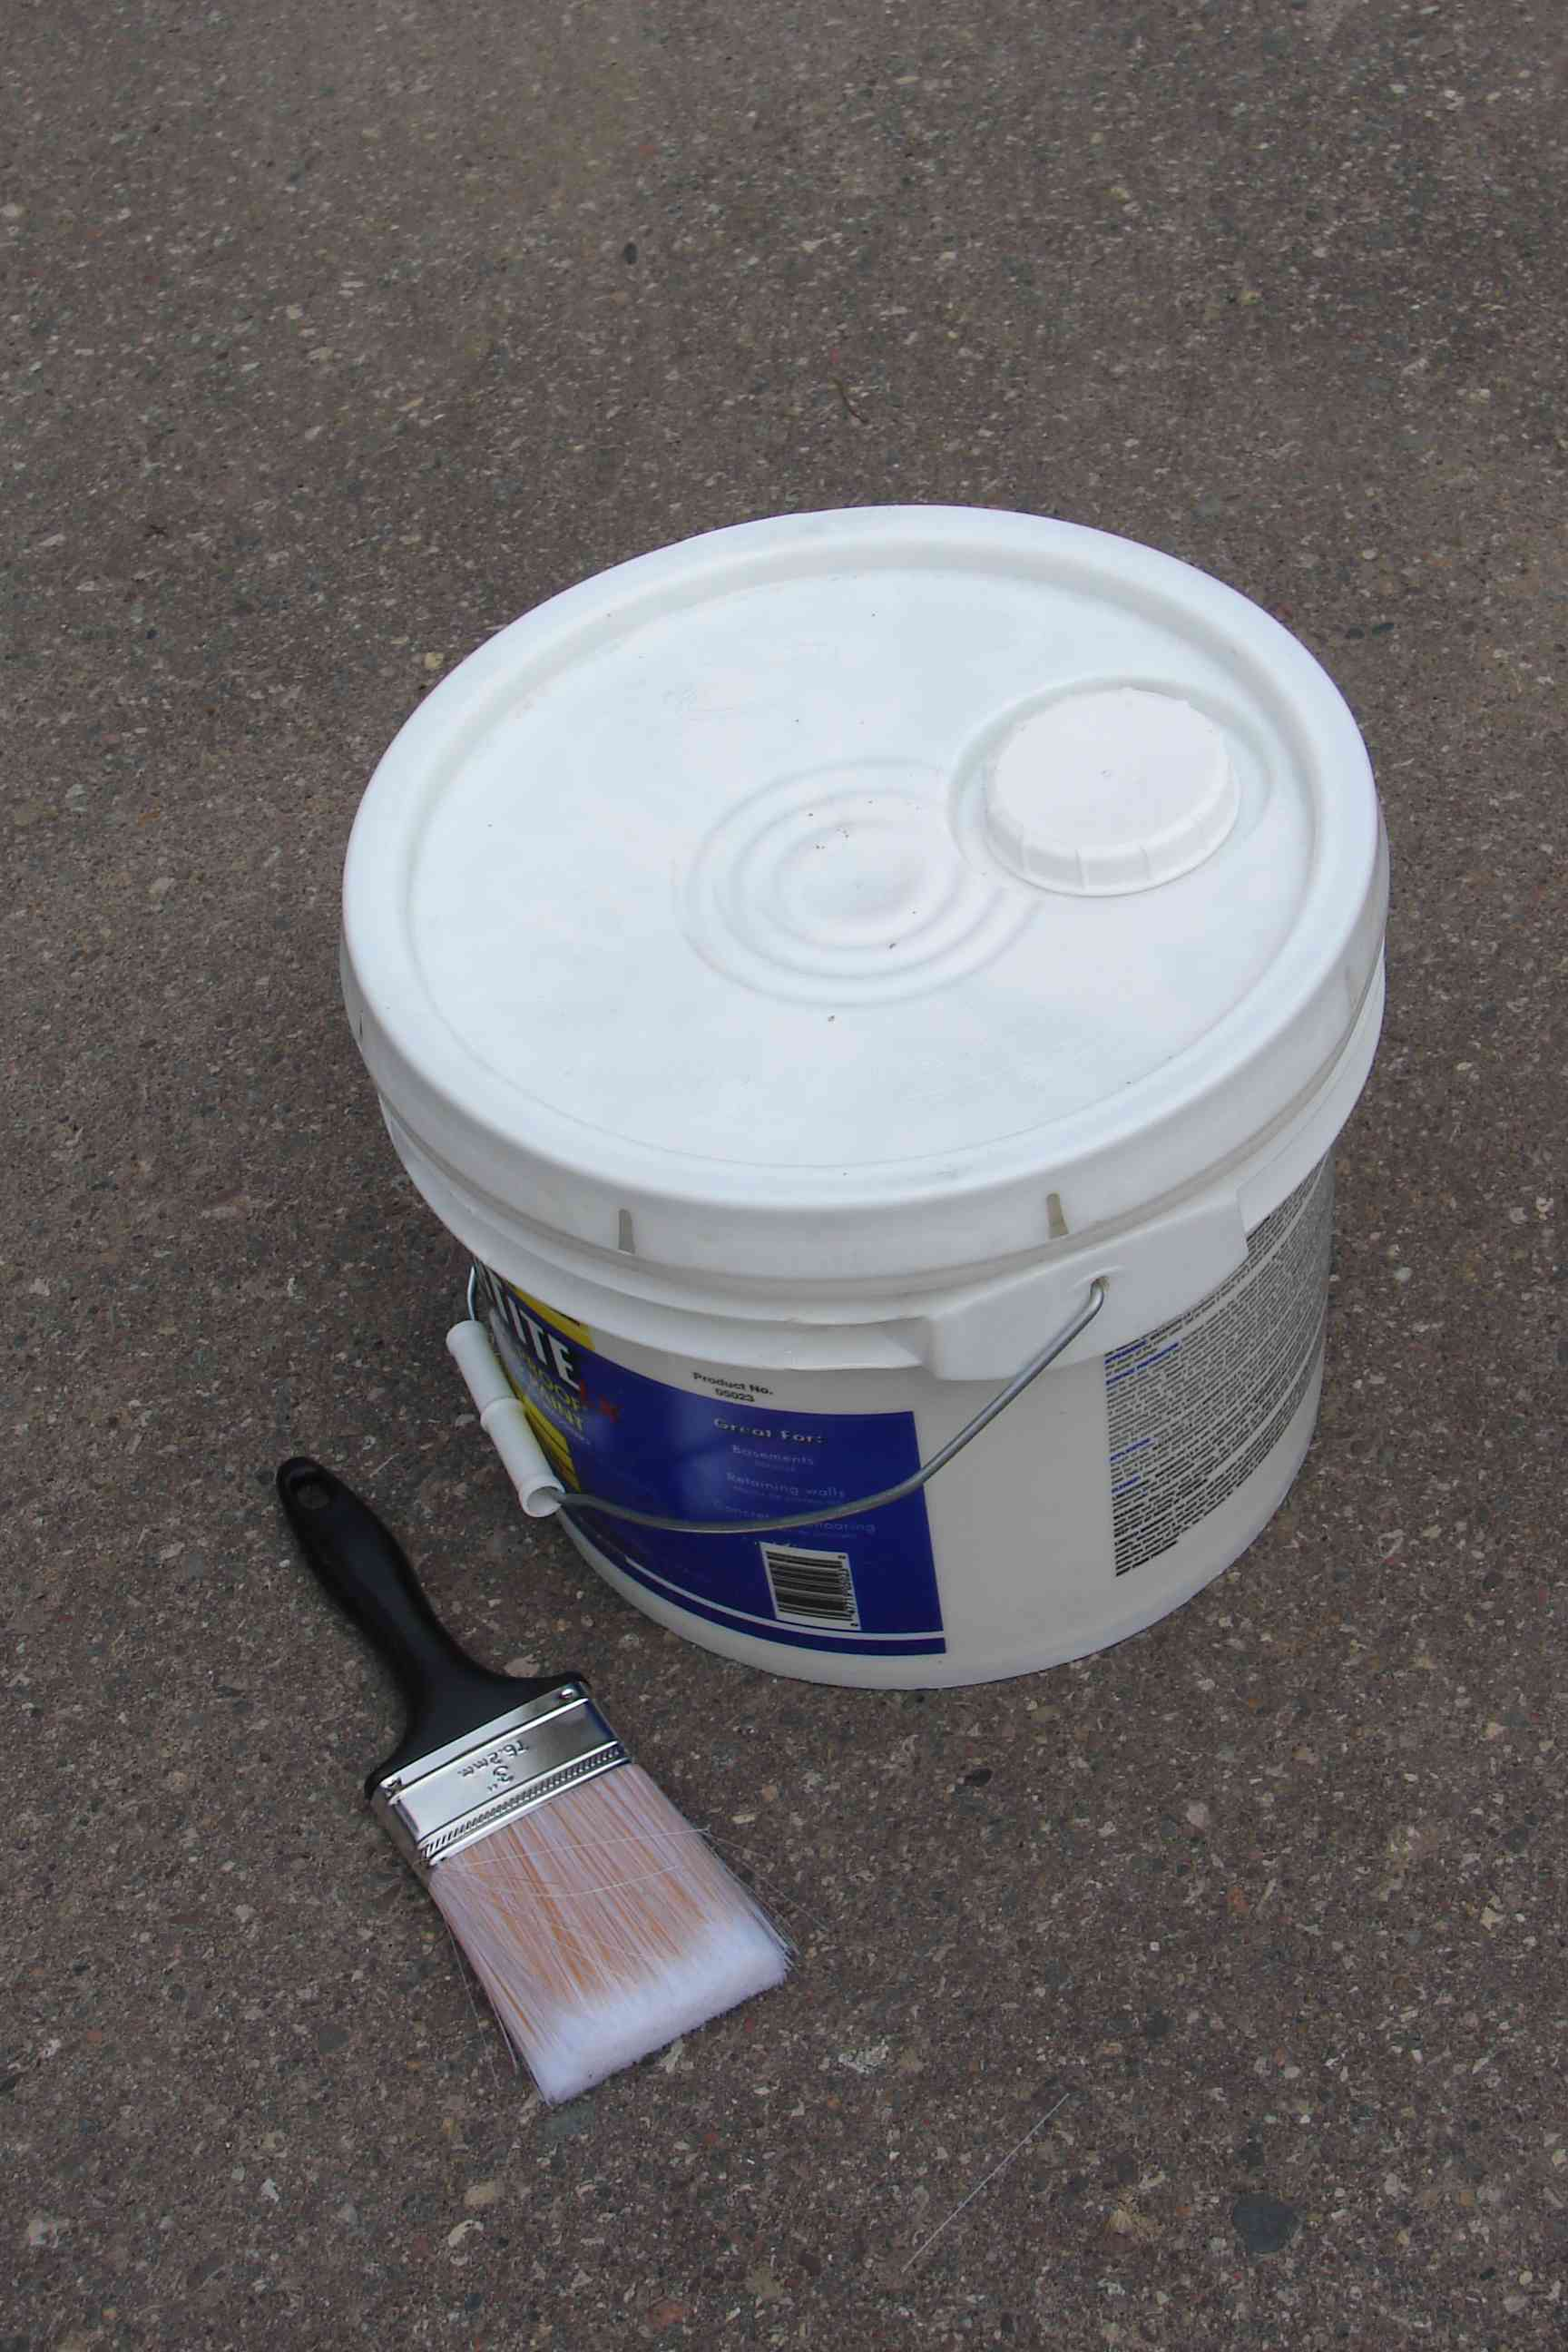 Plastic pail of paint and a paintbrush